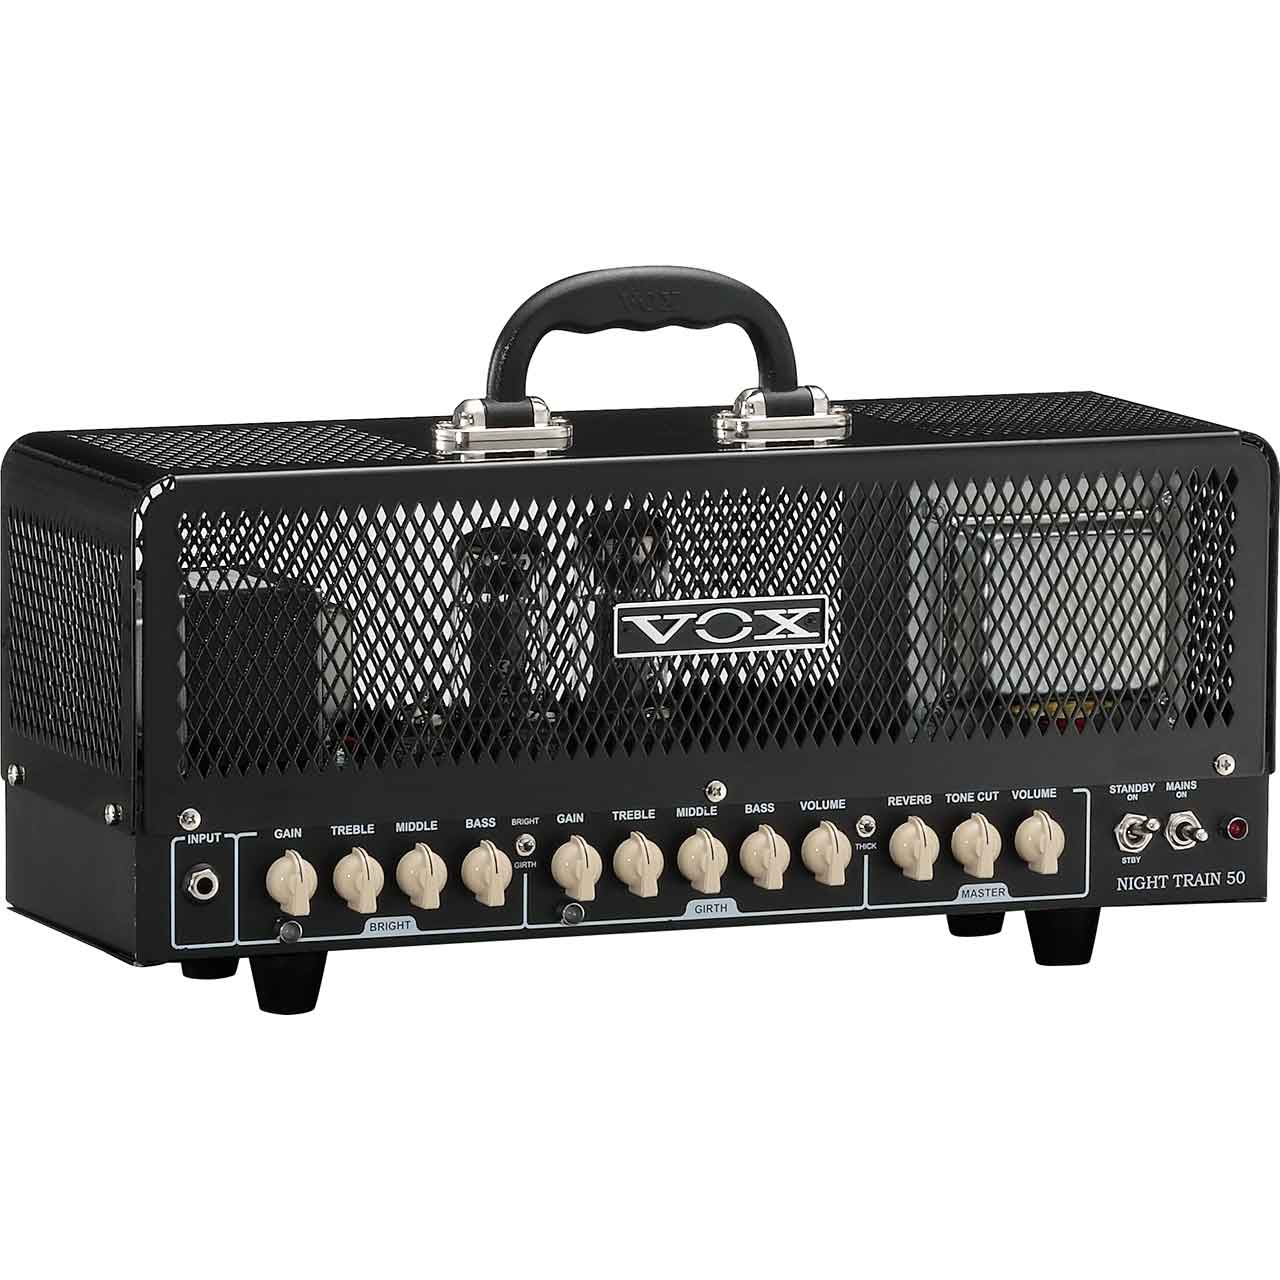 vox night train g2 nt50h g2 guitar amplifiers guitar amp heads instrument amplifiers. Black Bedroom Furniture Sets. Home Design Ideas